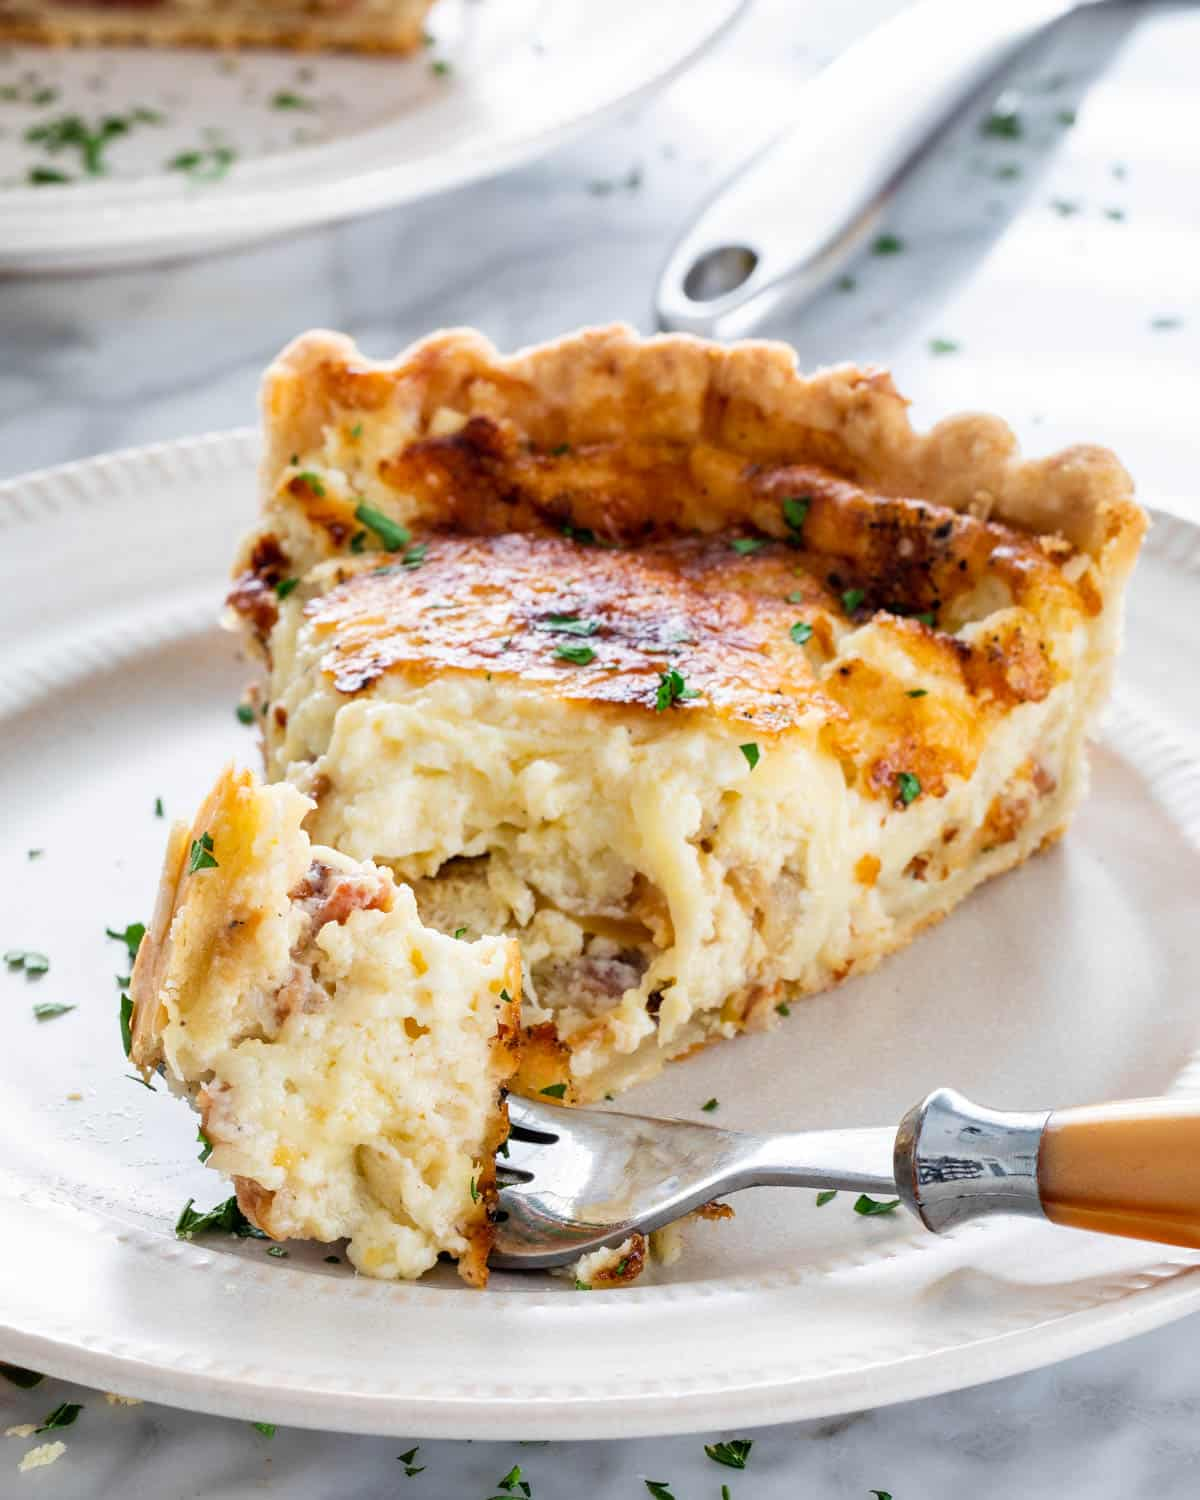 a slice of quiche on a white plate with a fork with a bite taken out of it